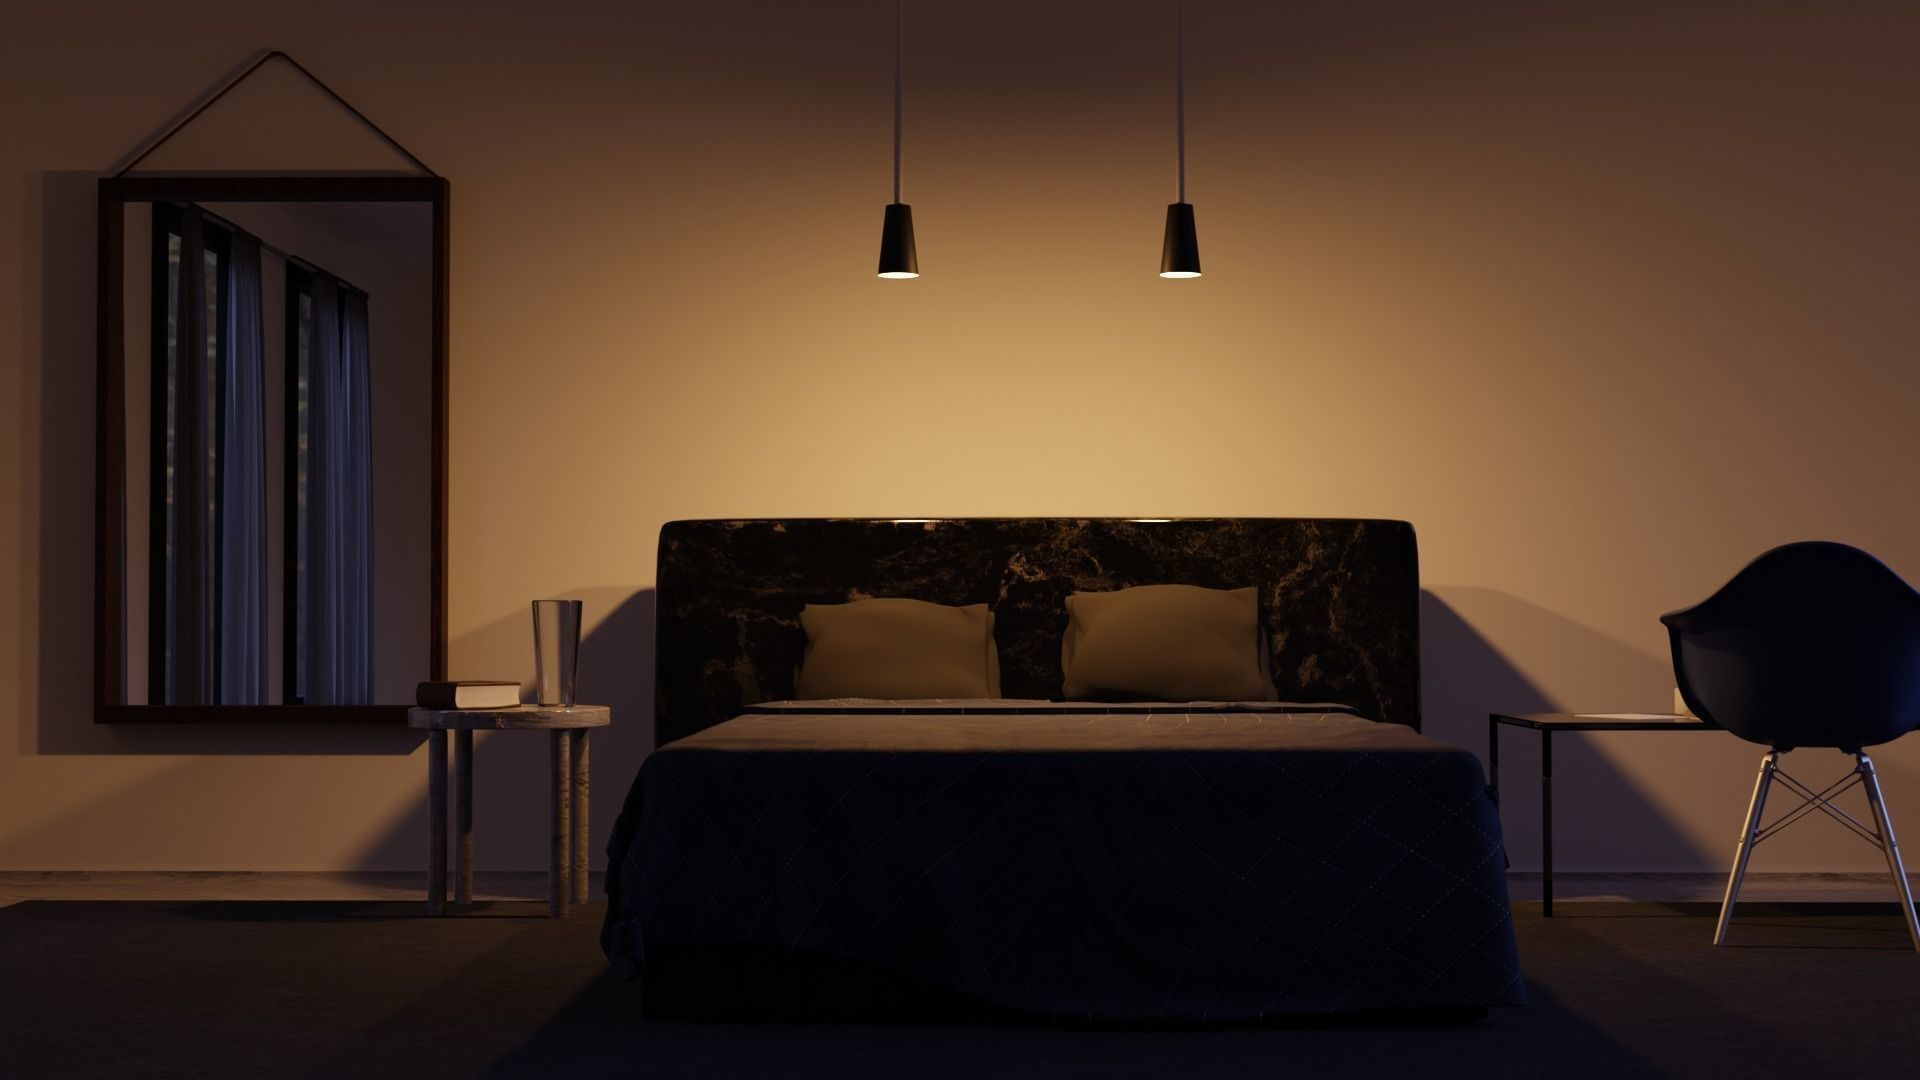 Modern Bedroom Night 4k Textures 3d Cgtrader